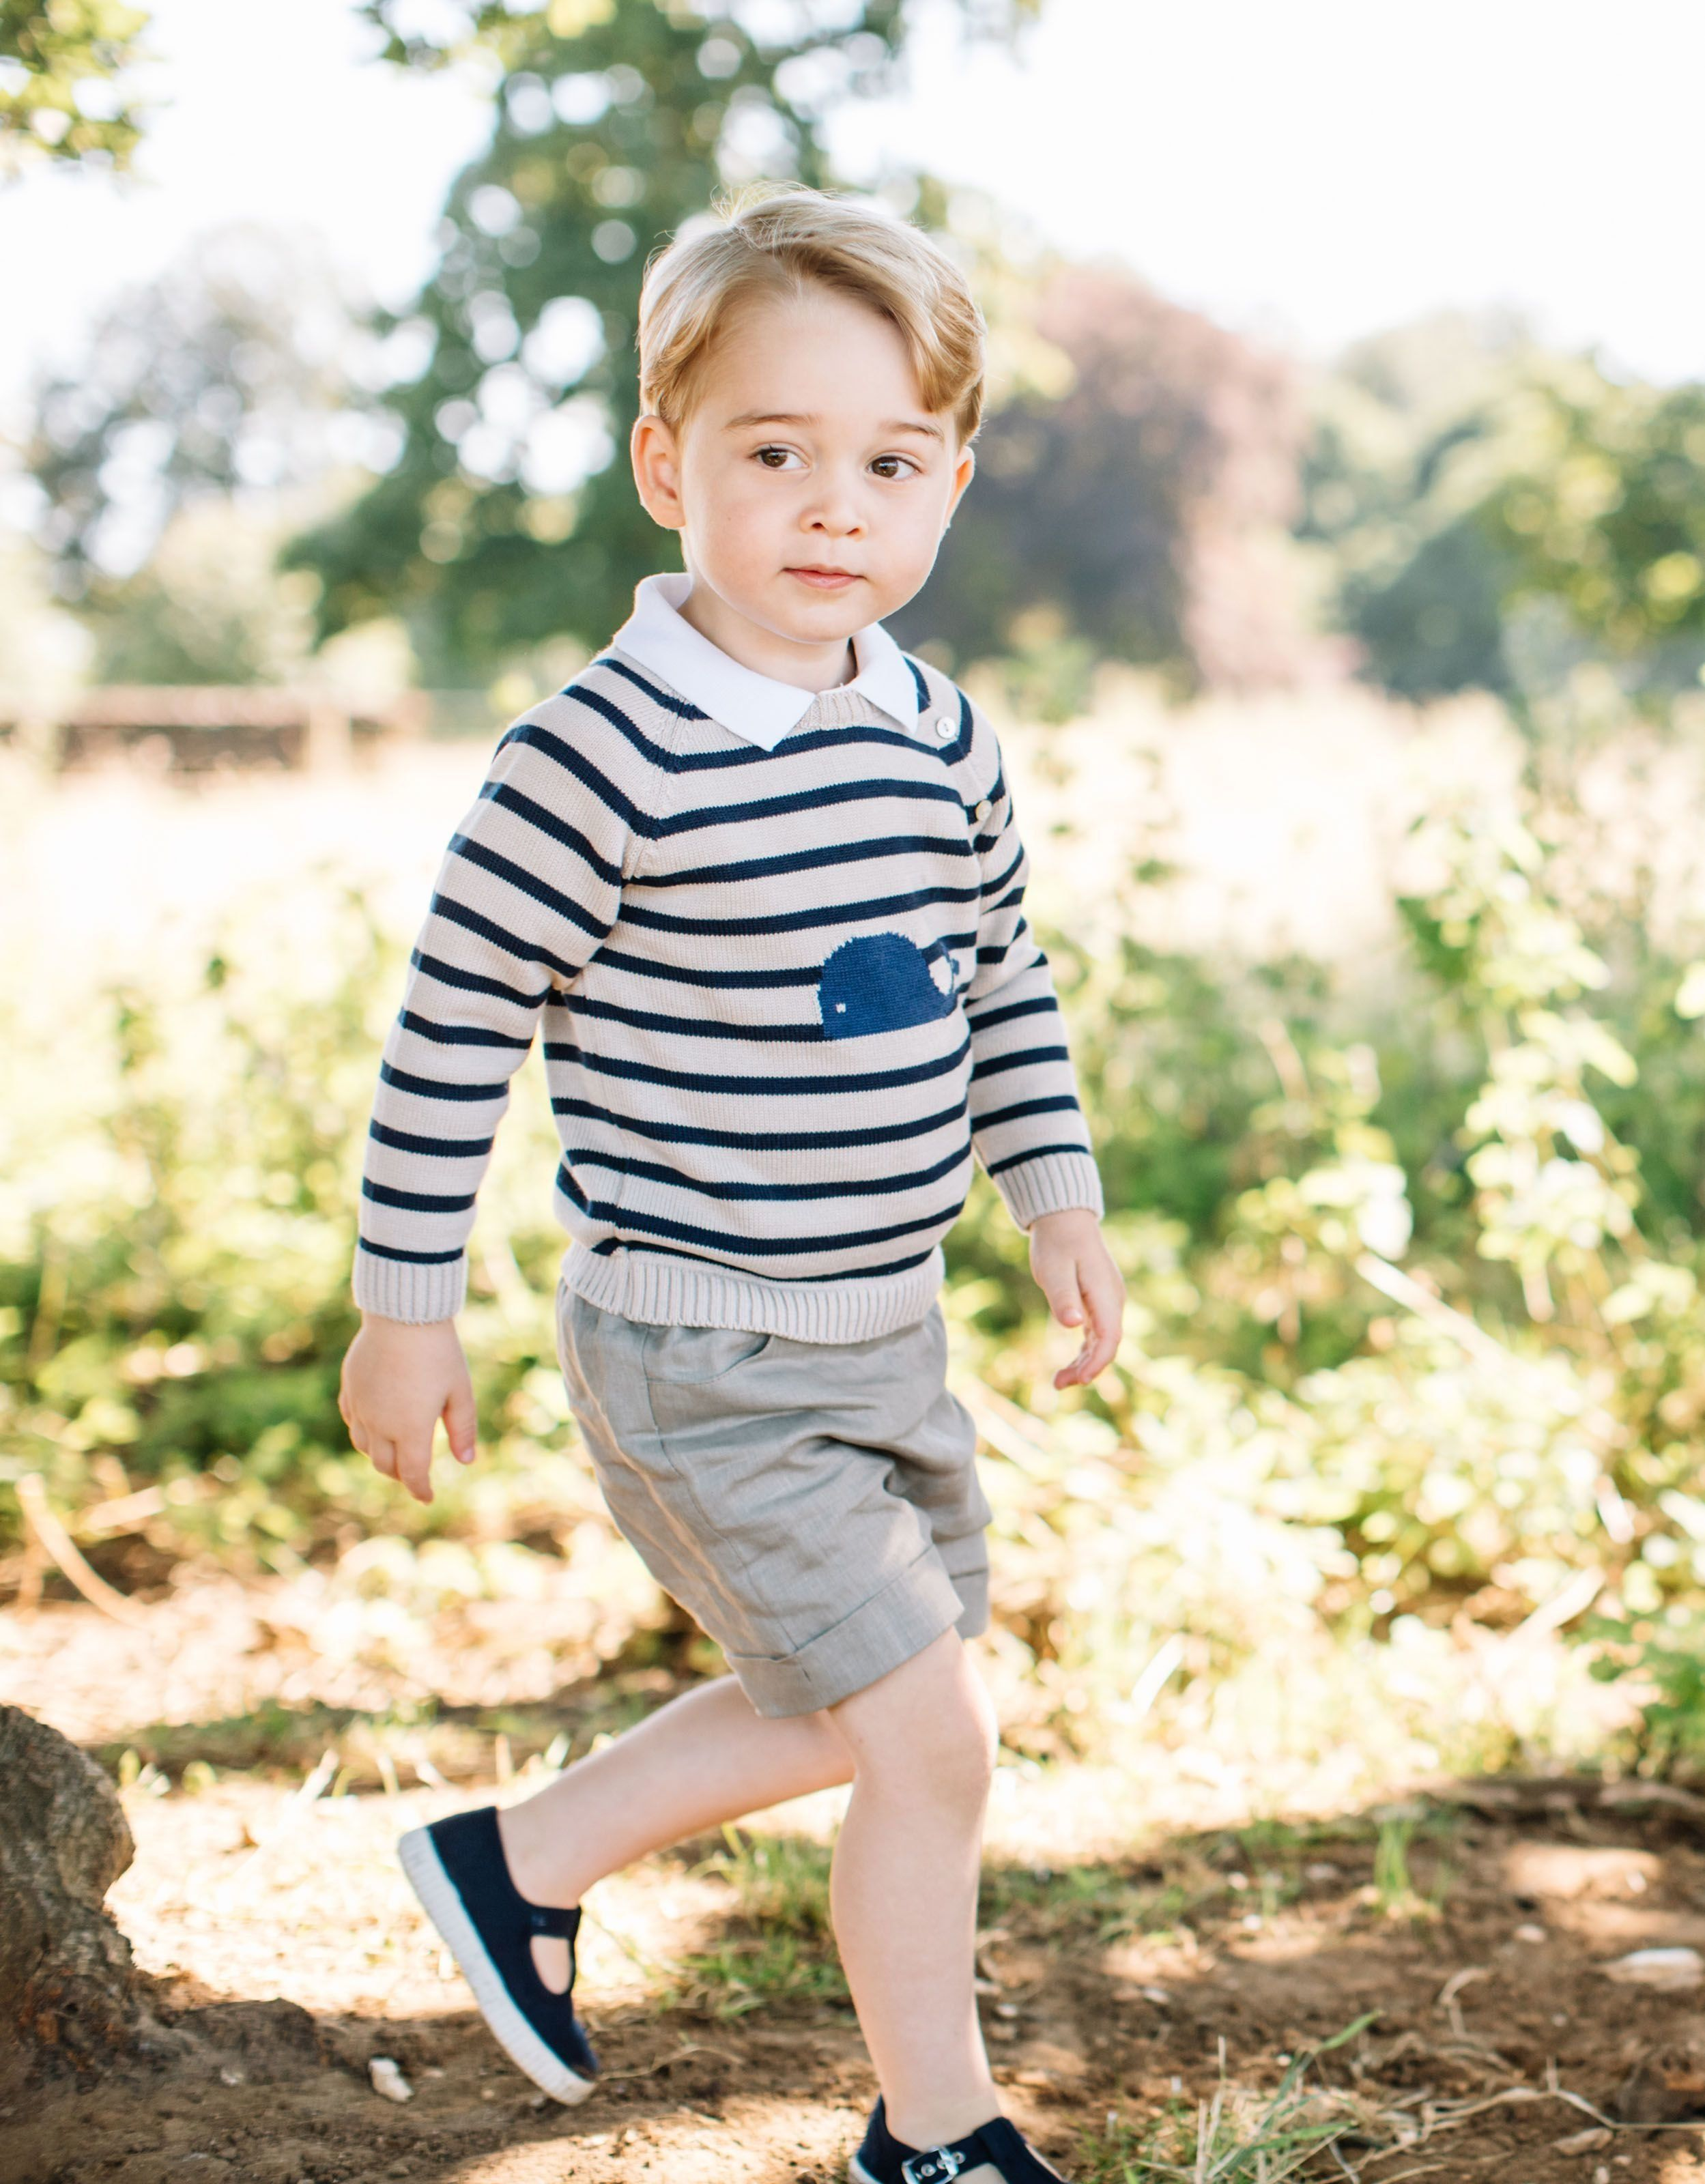 Official portrait released for Prince George's third birthday,taken at Sandringham Estate in Norfolk in mid-July 2016.&